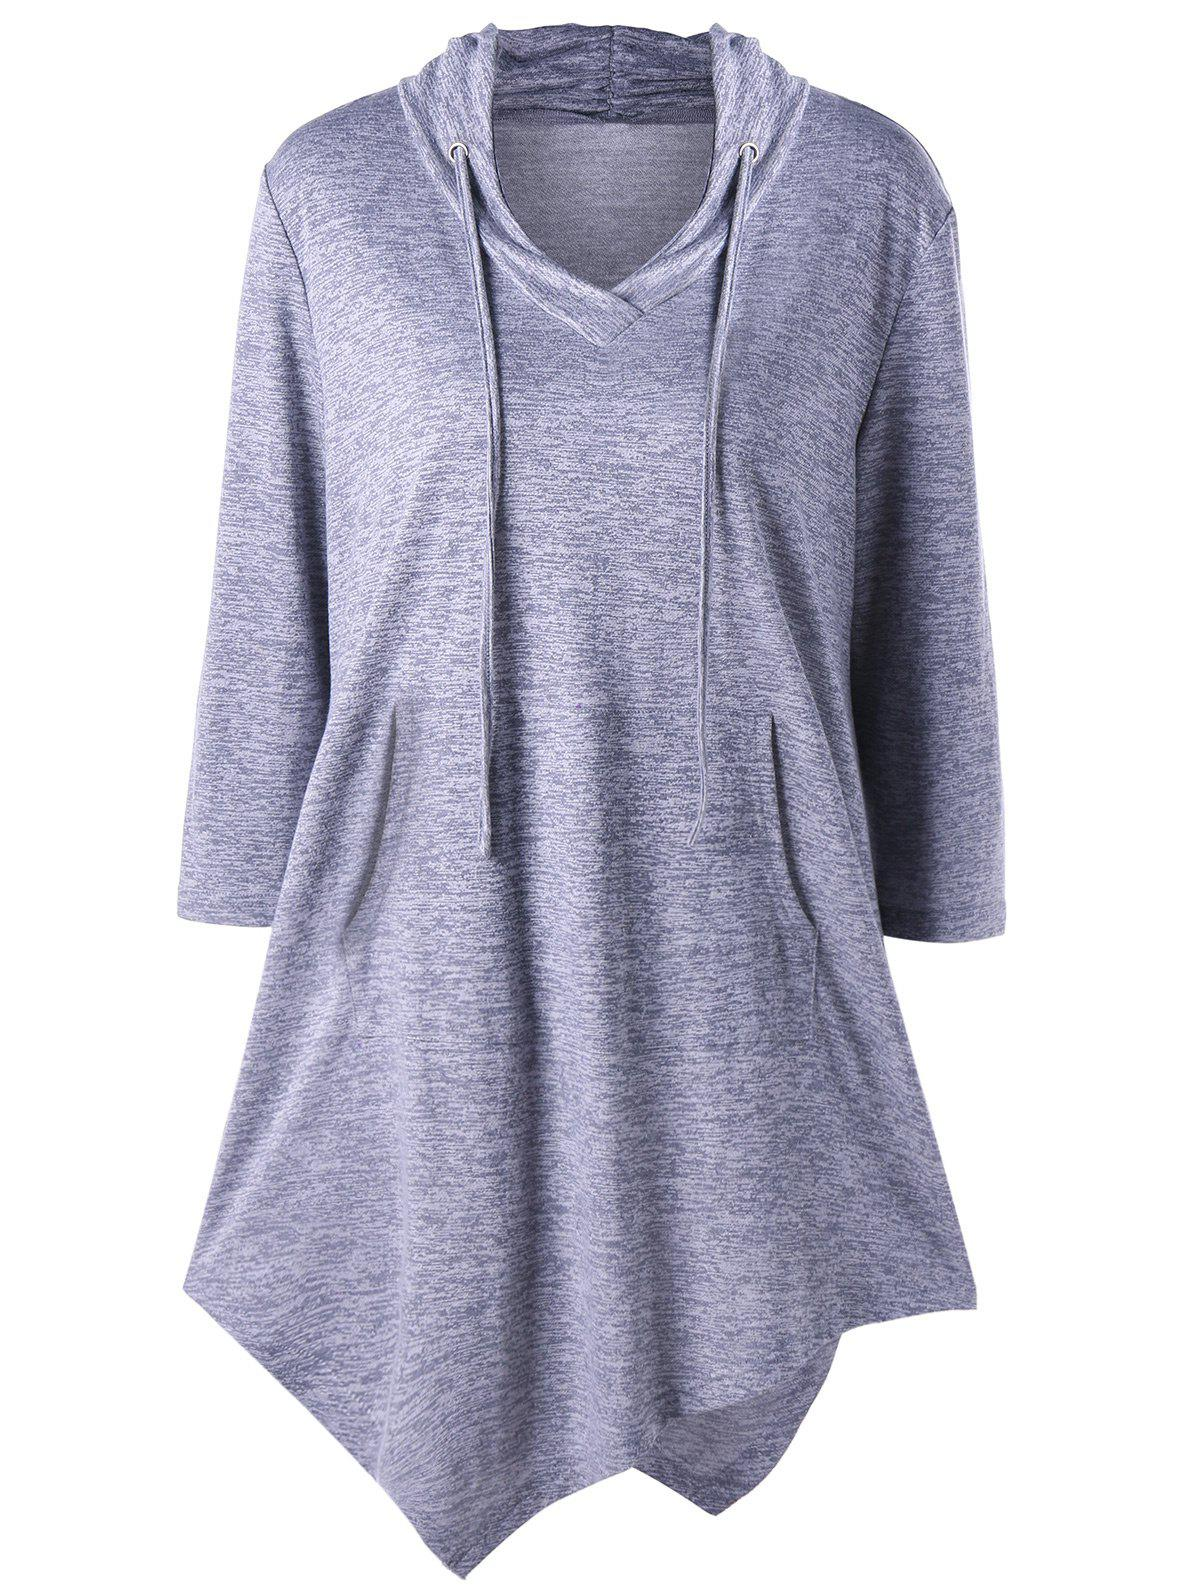 Plus Size Kangaroo Pocket Asymmetrical Drawstring TeeWOMEN<br><br>Size: 4XL; Color: GRAY; Material: Polyester,Rayon; Shirt Length: Long; Sleeve Length: Three Quarter; Collar: Hooded; Style: Fashion; Season: Fall,Spring; Pattern Type: Solid; Weight: 0.3150kg; Package Contents: 1 x T-shirt;